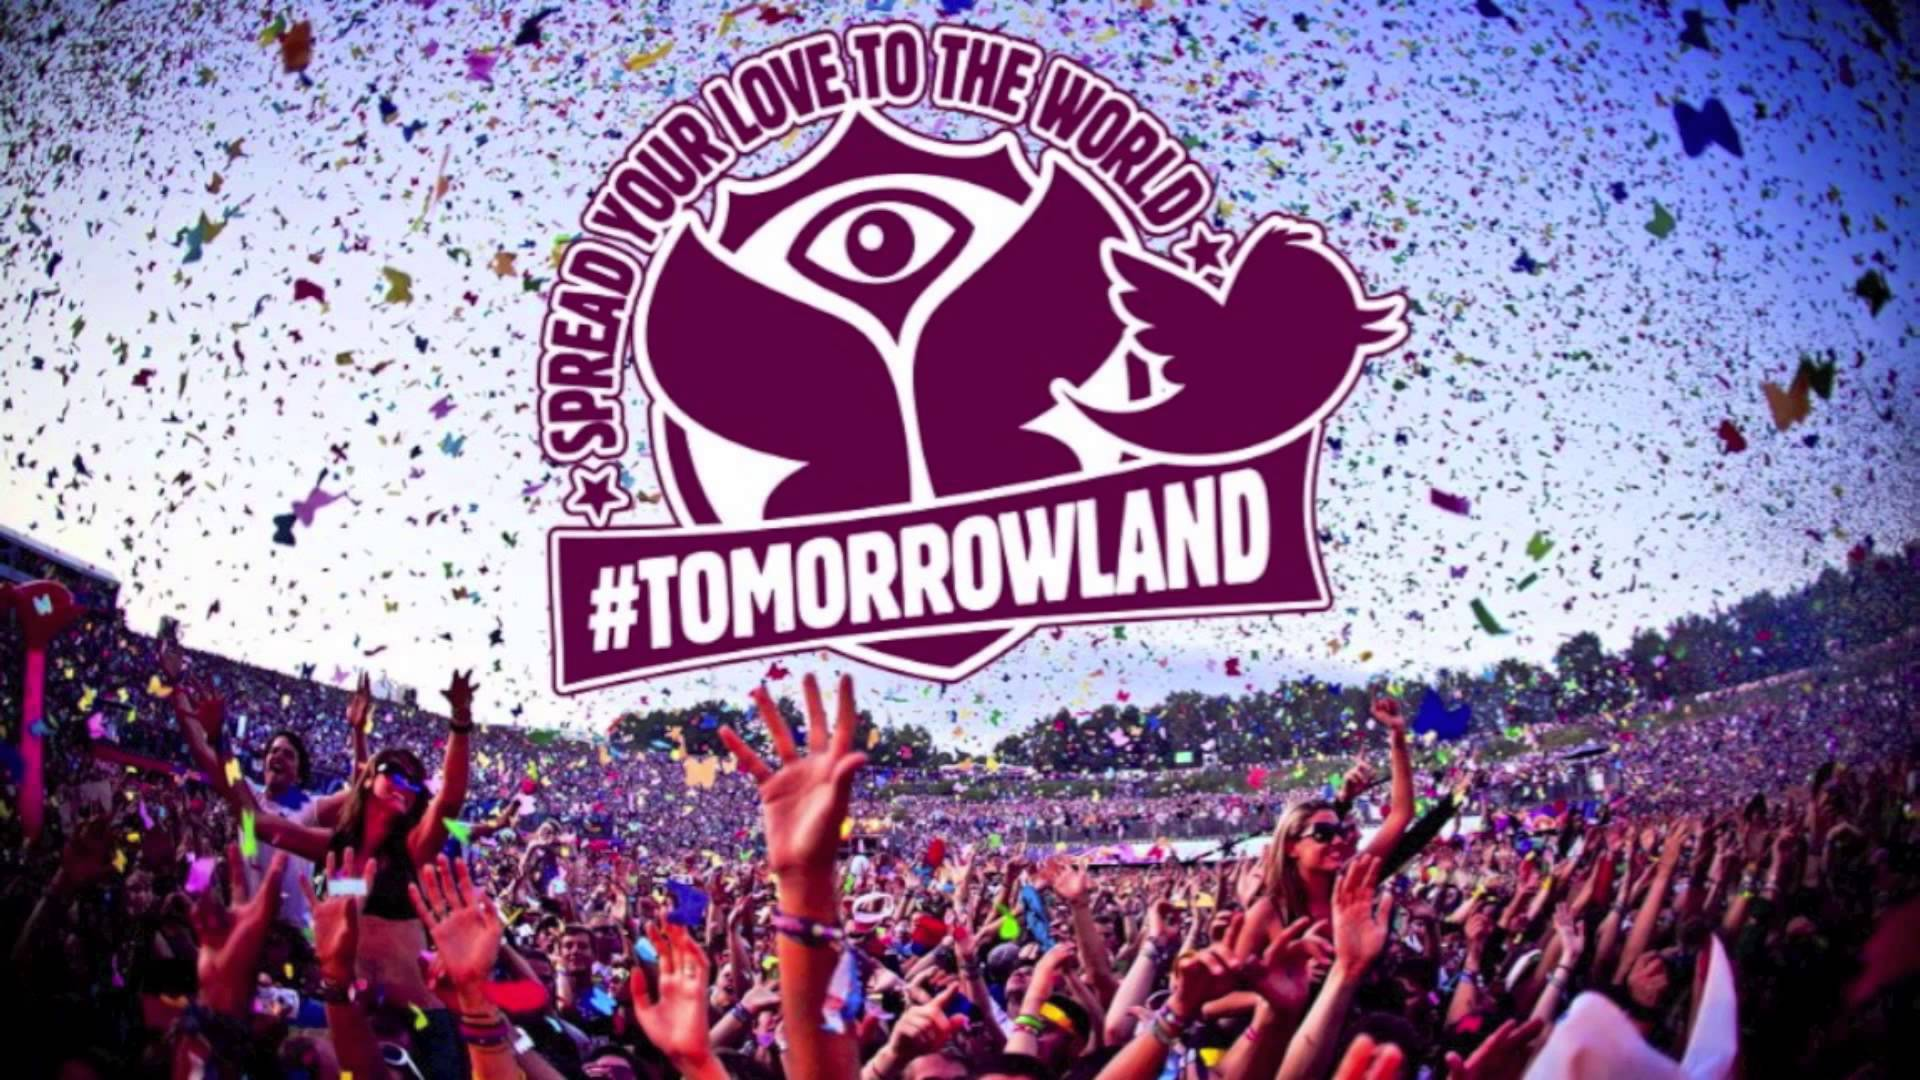 Tomorrowland Logo Wallpapers Wallpaper Cave